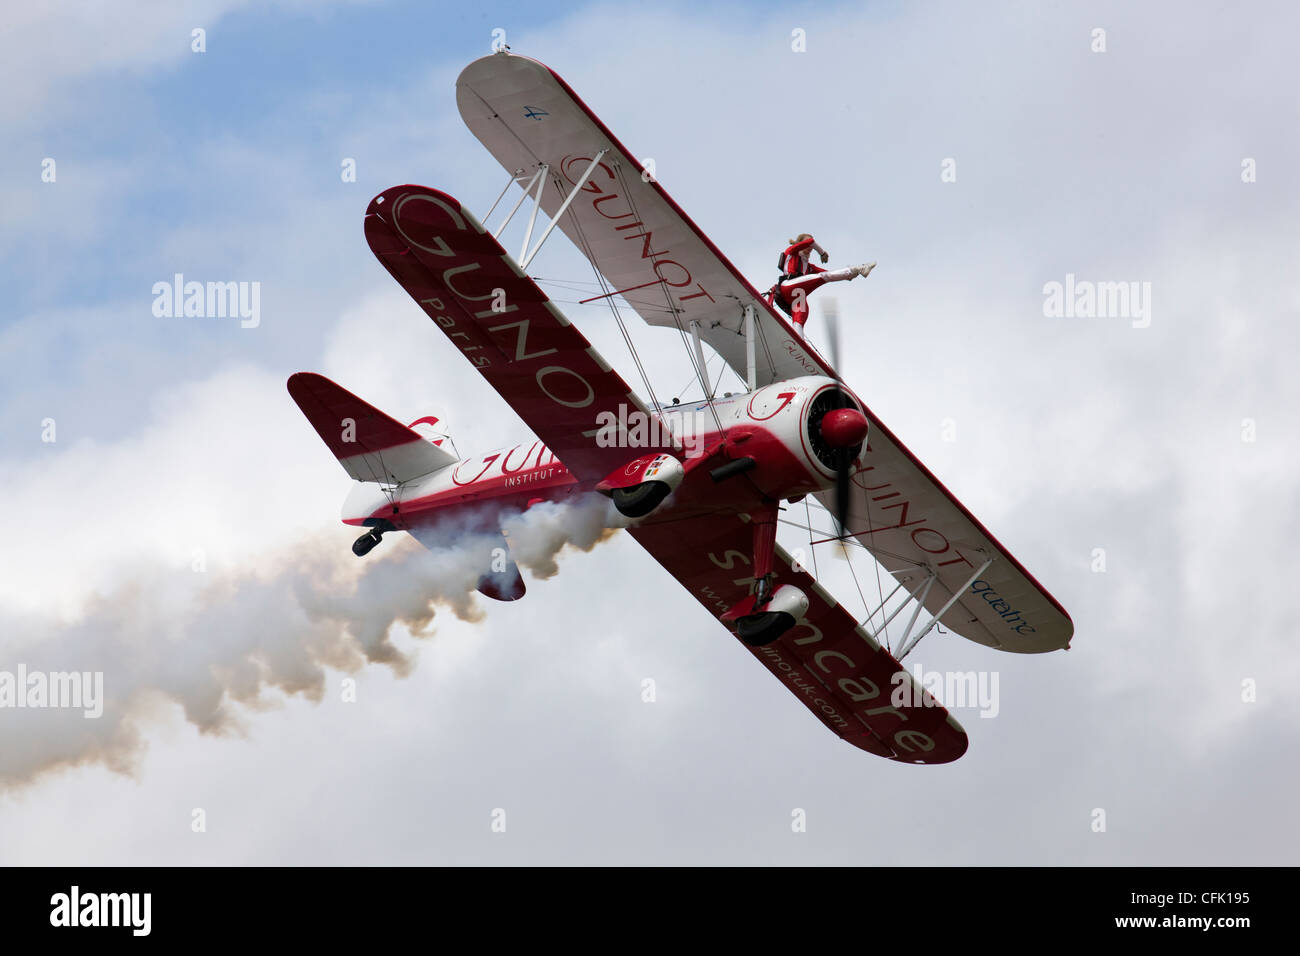 Wing walking on the Guinot biplane formation display team - Stock Image